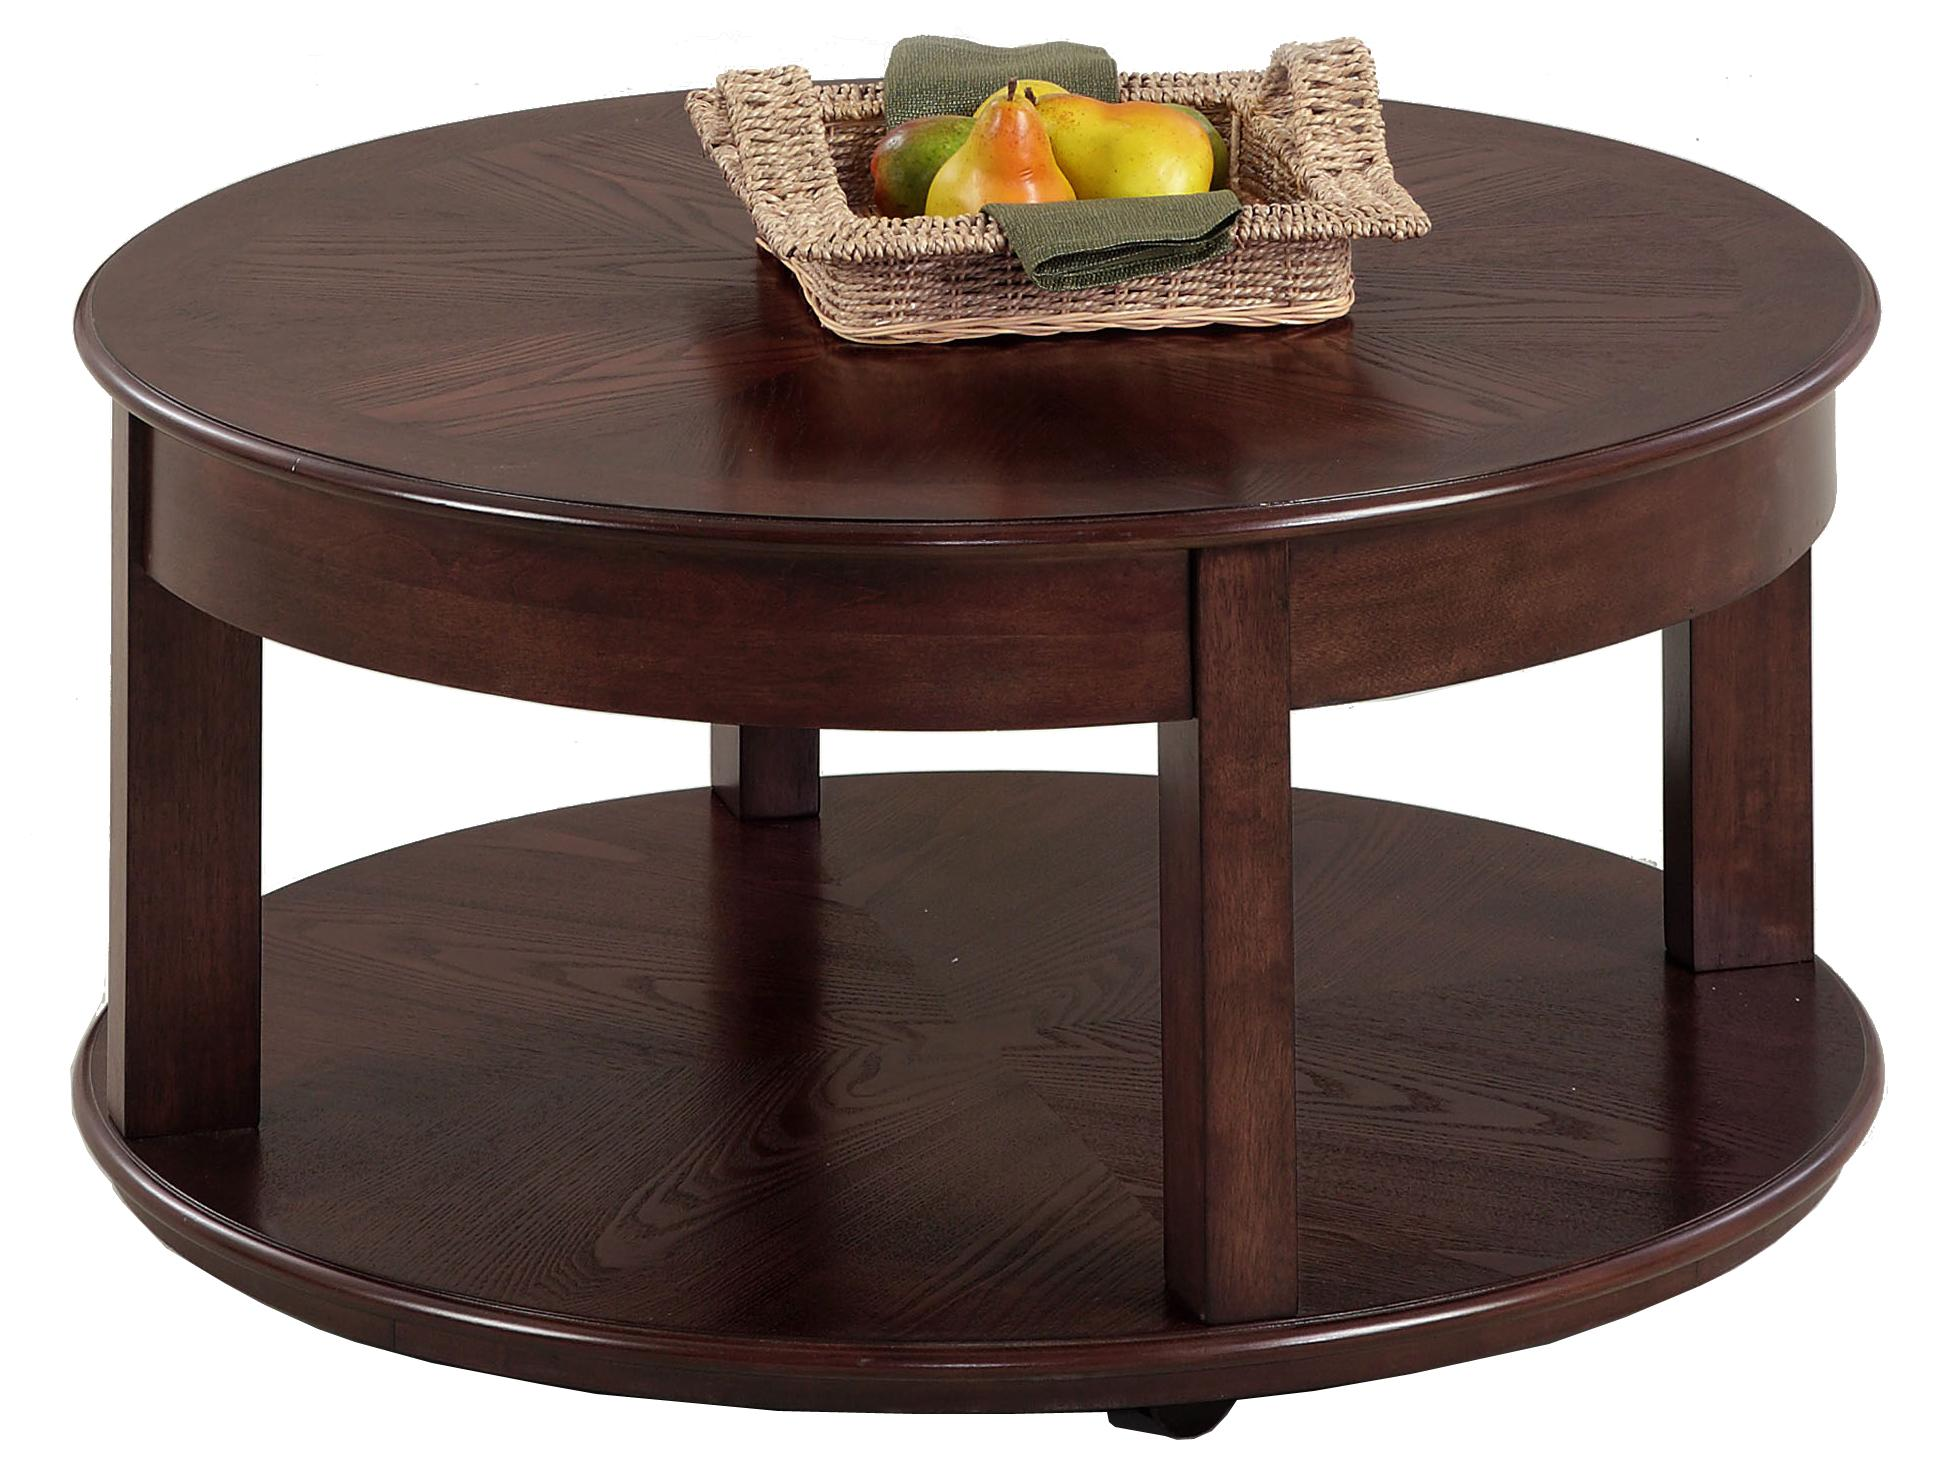 Sebring Castered Round Cocktail Table by Progressive Furniture at Catalog Outlet